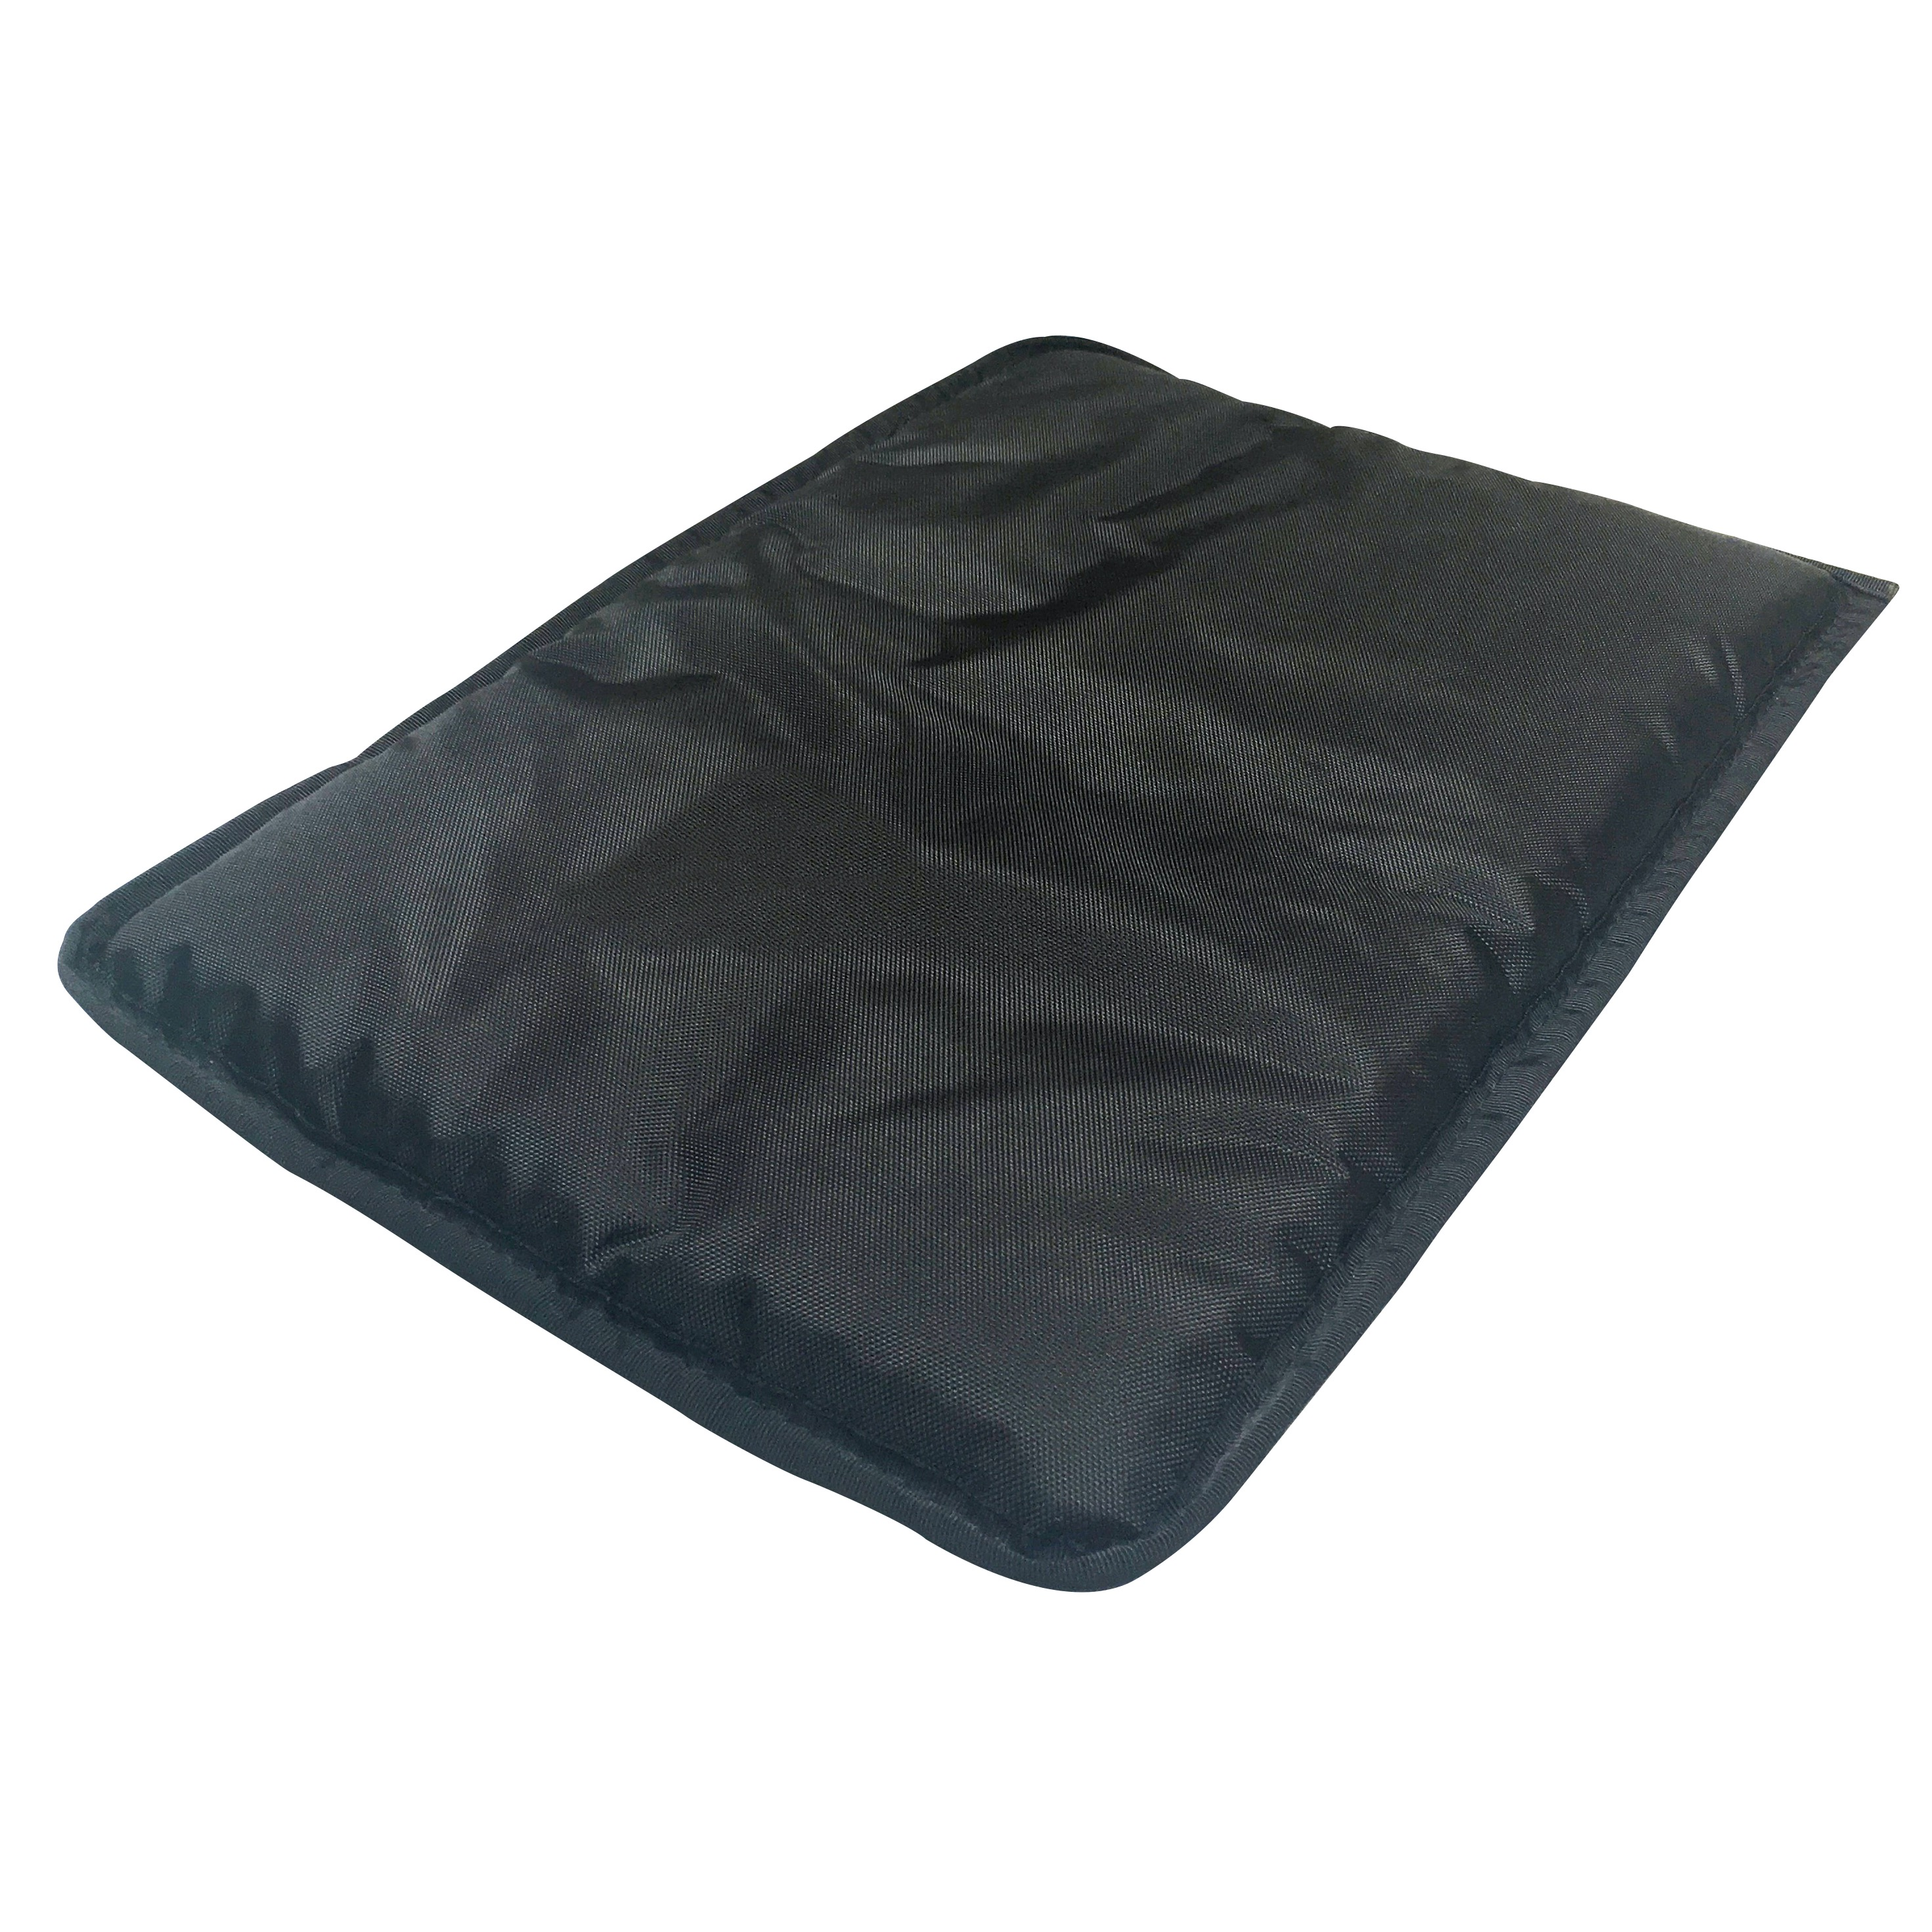 Bag Thermal Pad, medium, 20-1/2'' x 14'', nylon, black